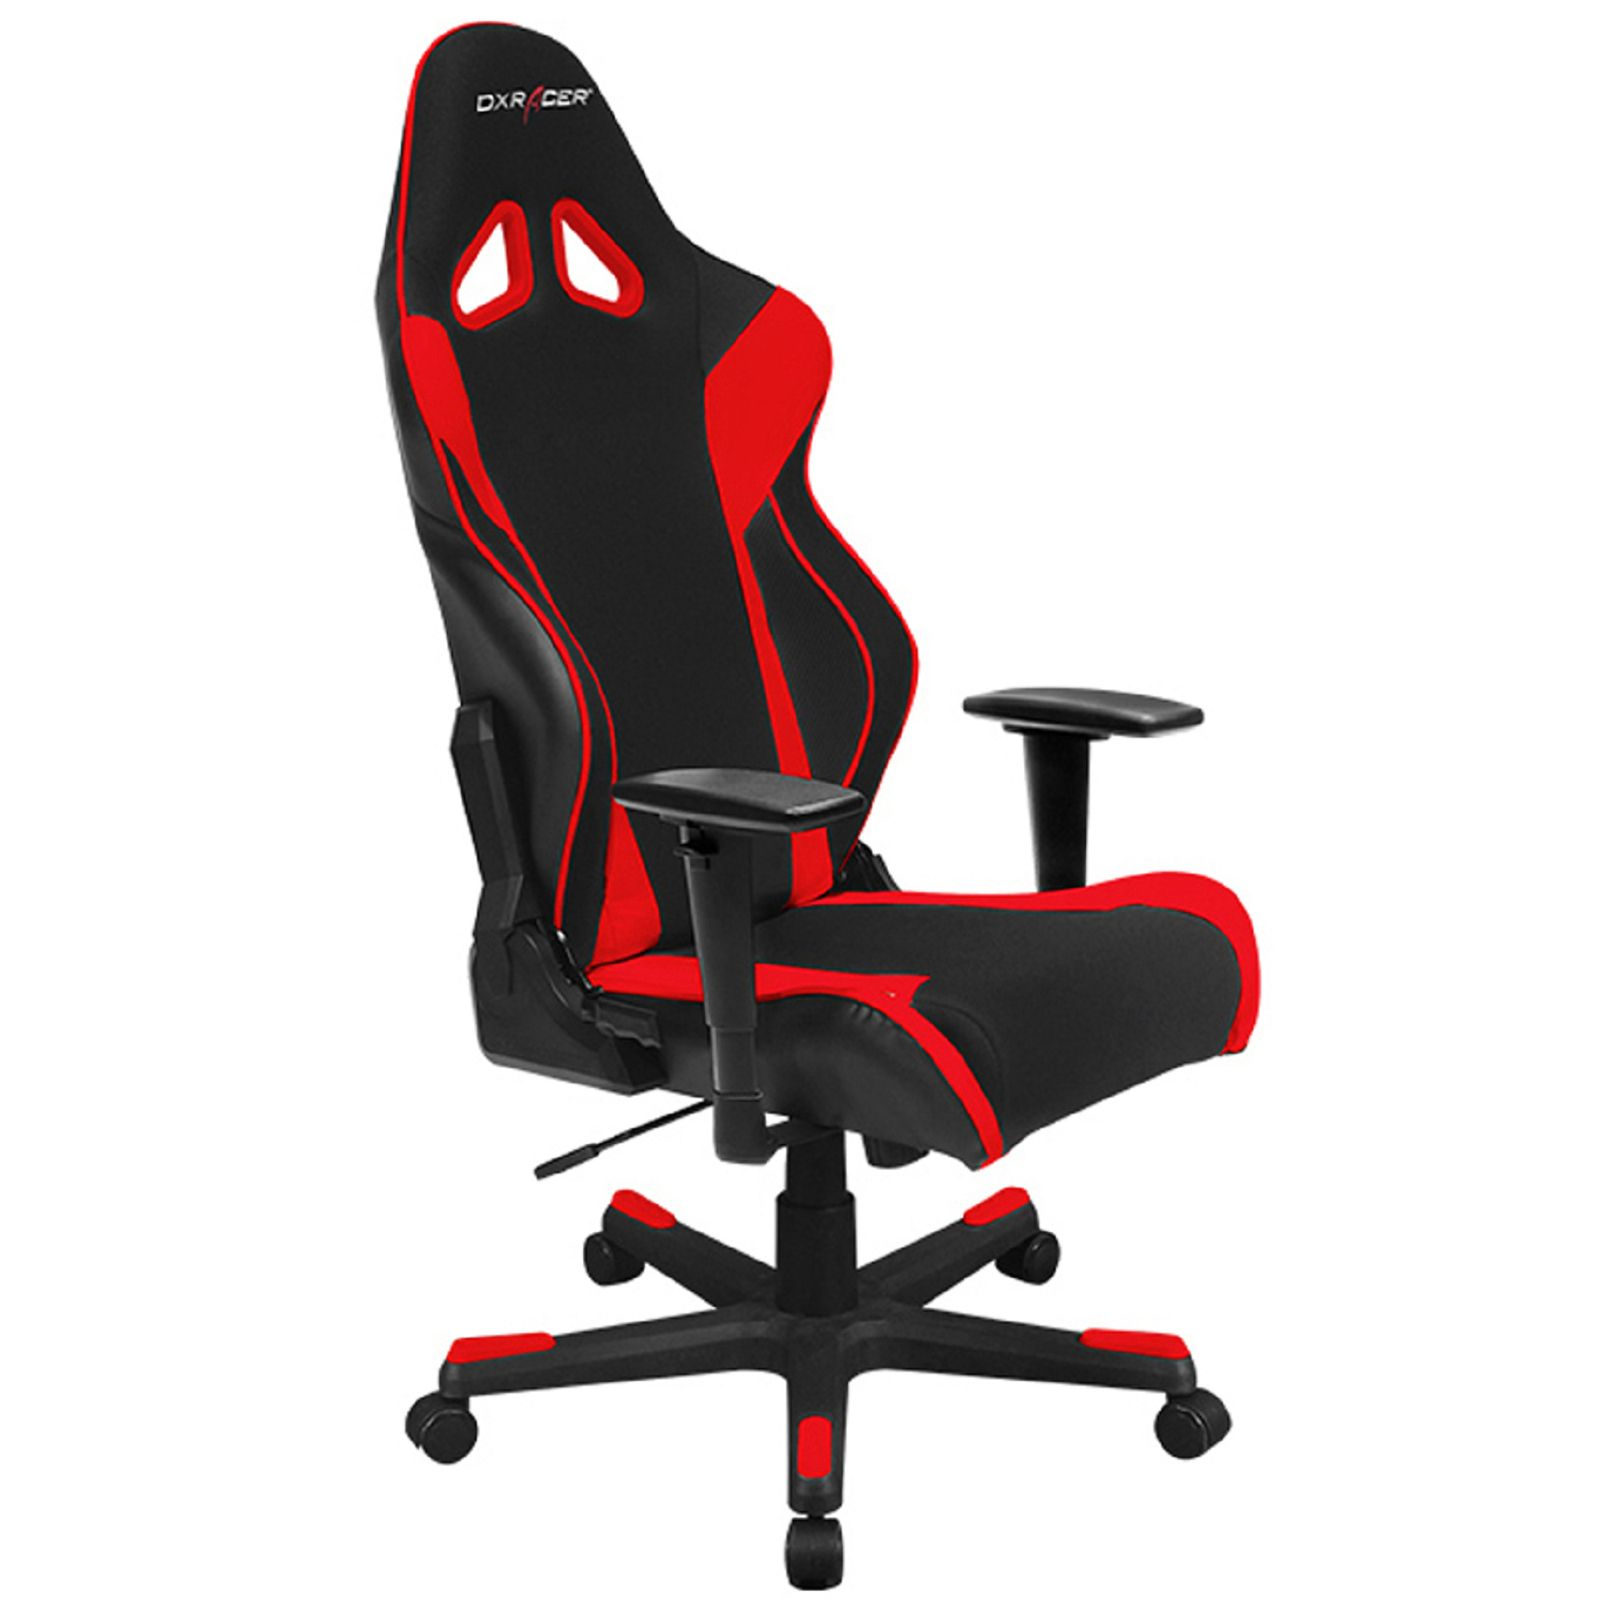 DXRACER RW106NR puter chair office chair sports chair gaming